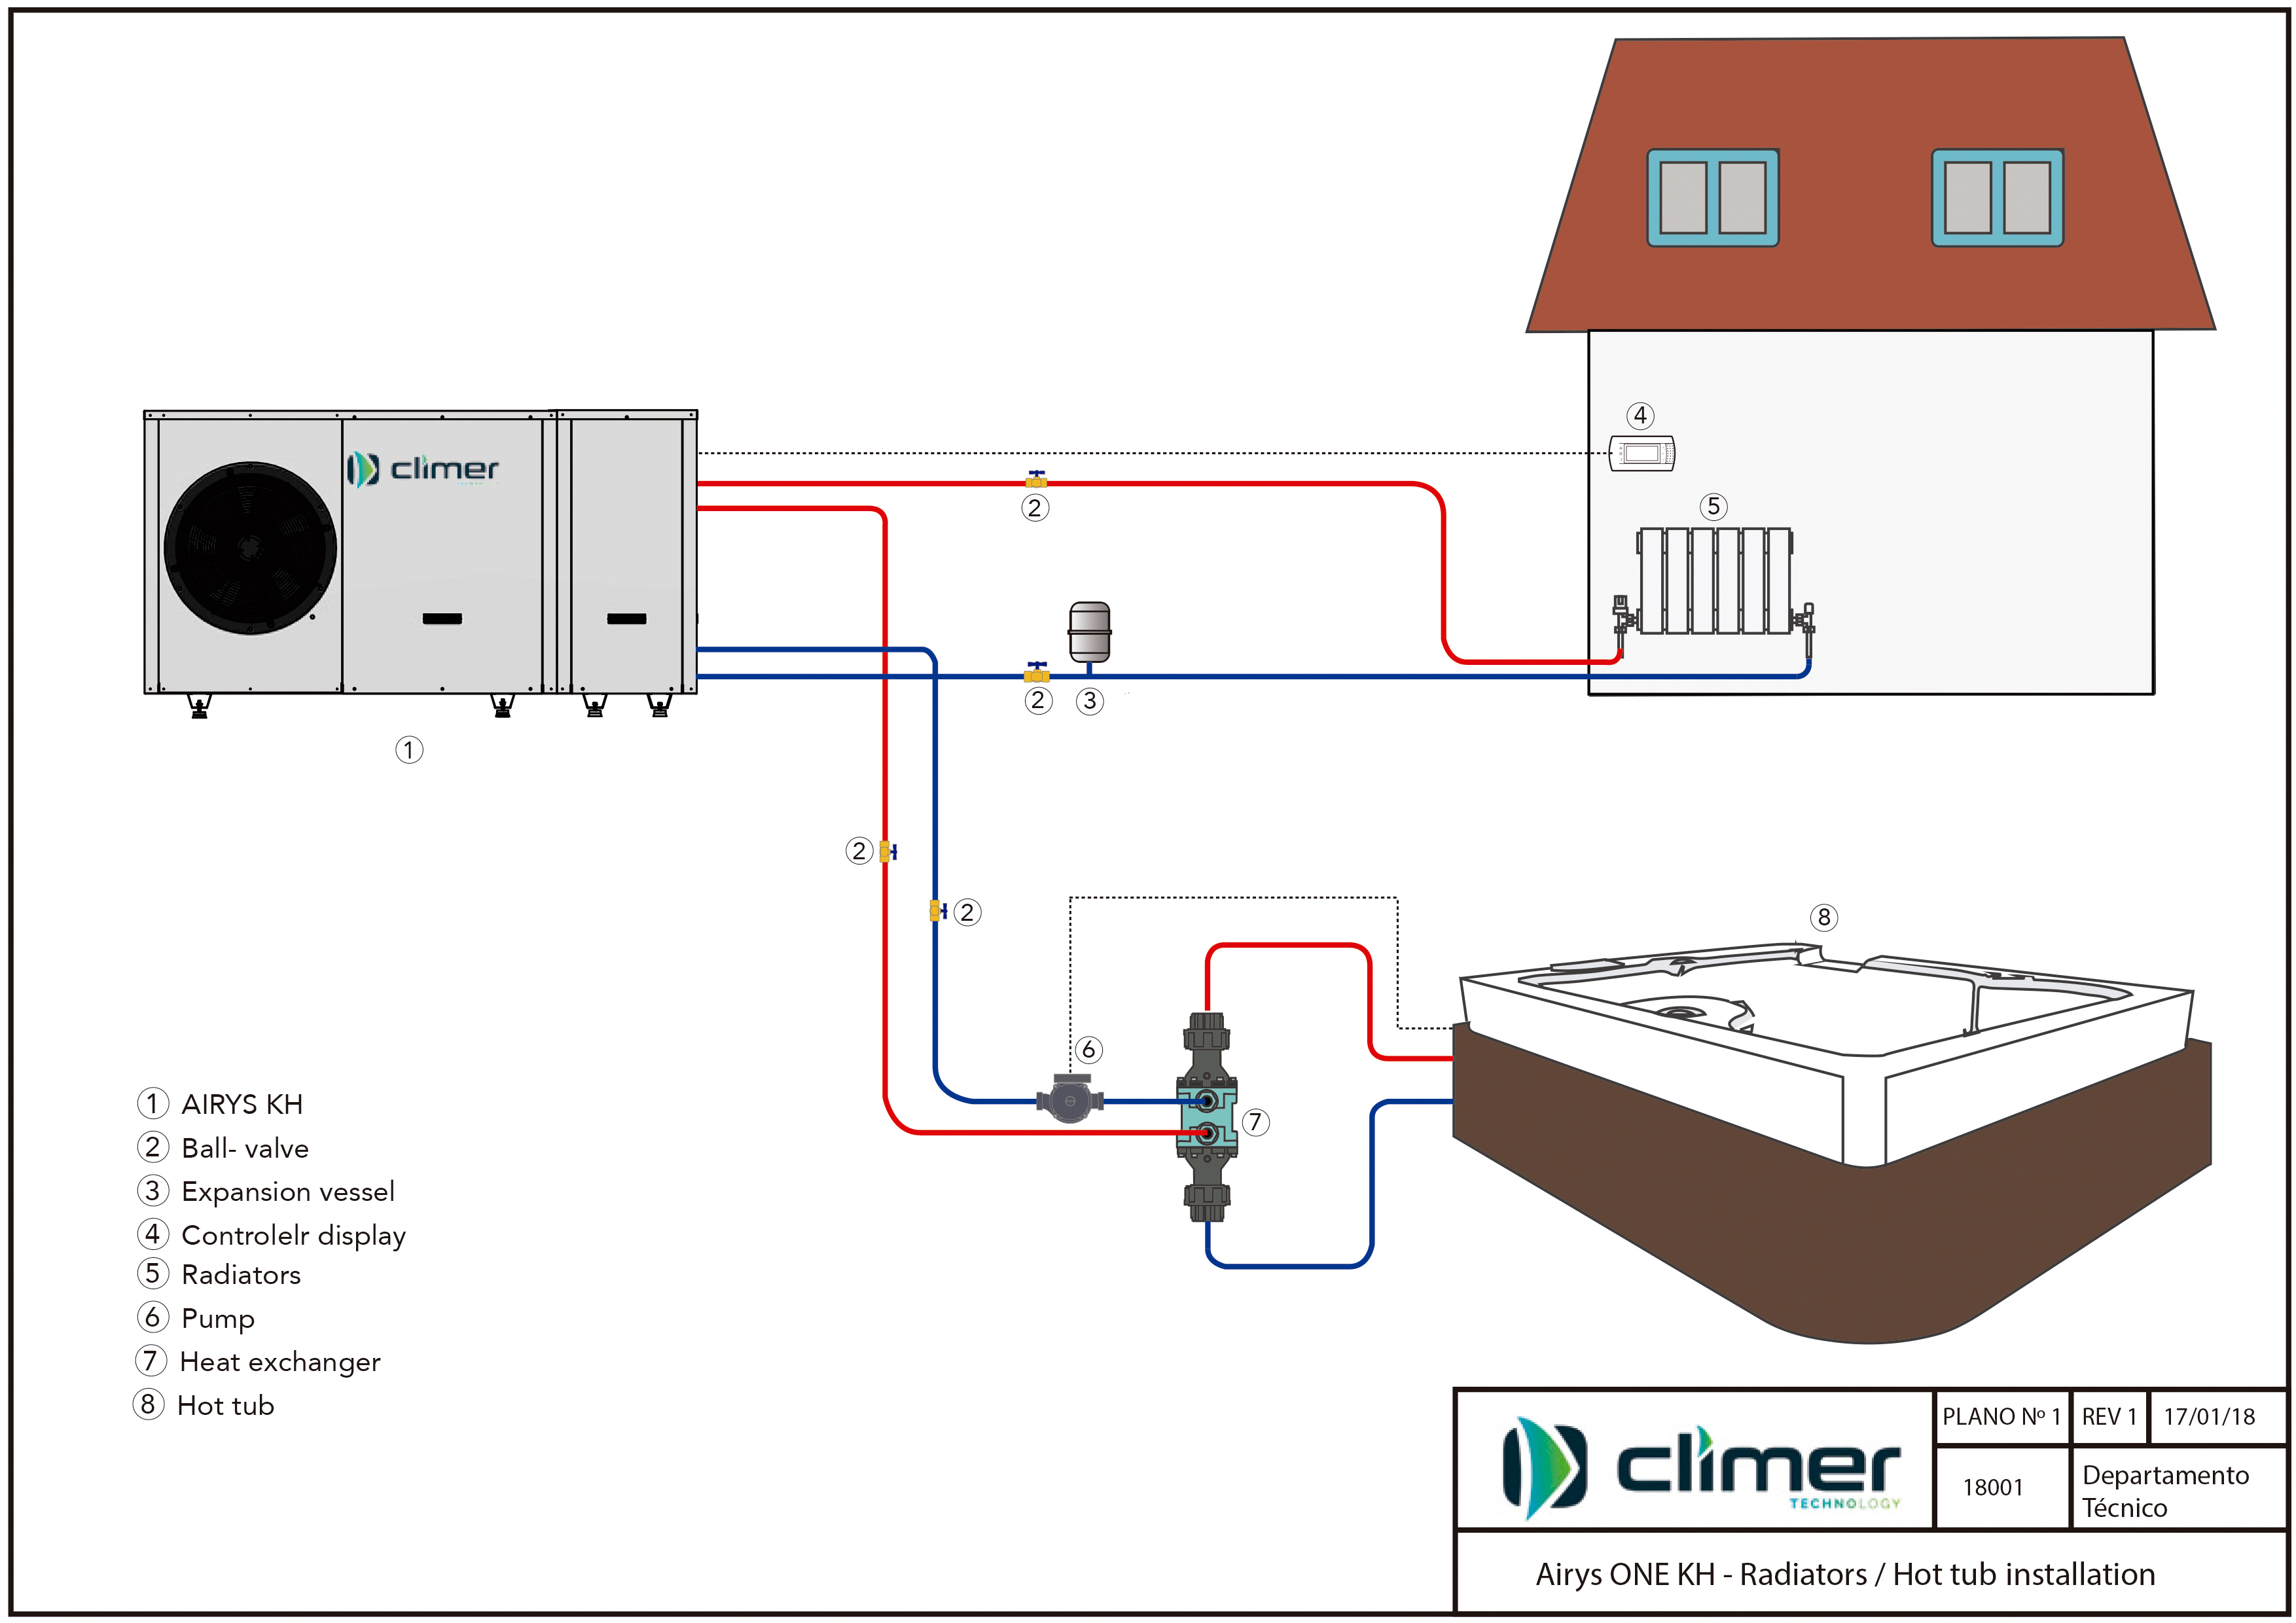 Holiday Home Heating And Hot Water System Park Leisure Solutions Ltd Tub To Heat Pump Wiring Diagram If You Would Like Further Details Of The New Systems Or Have A Requirement For Another Application Please Do Not